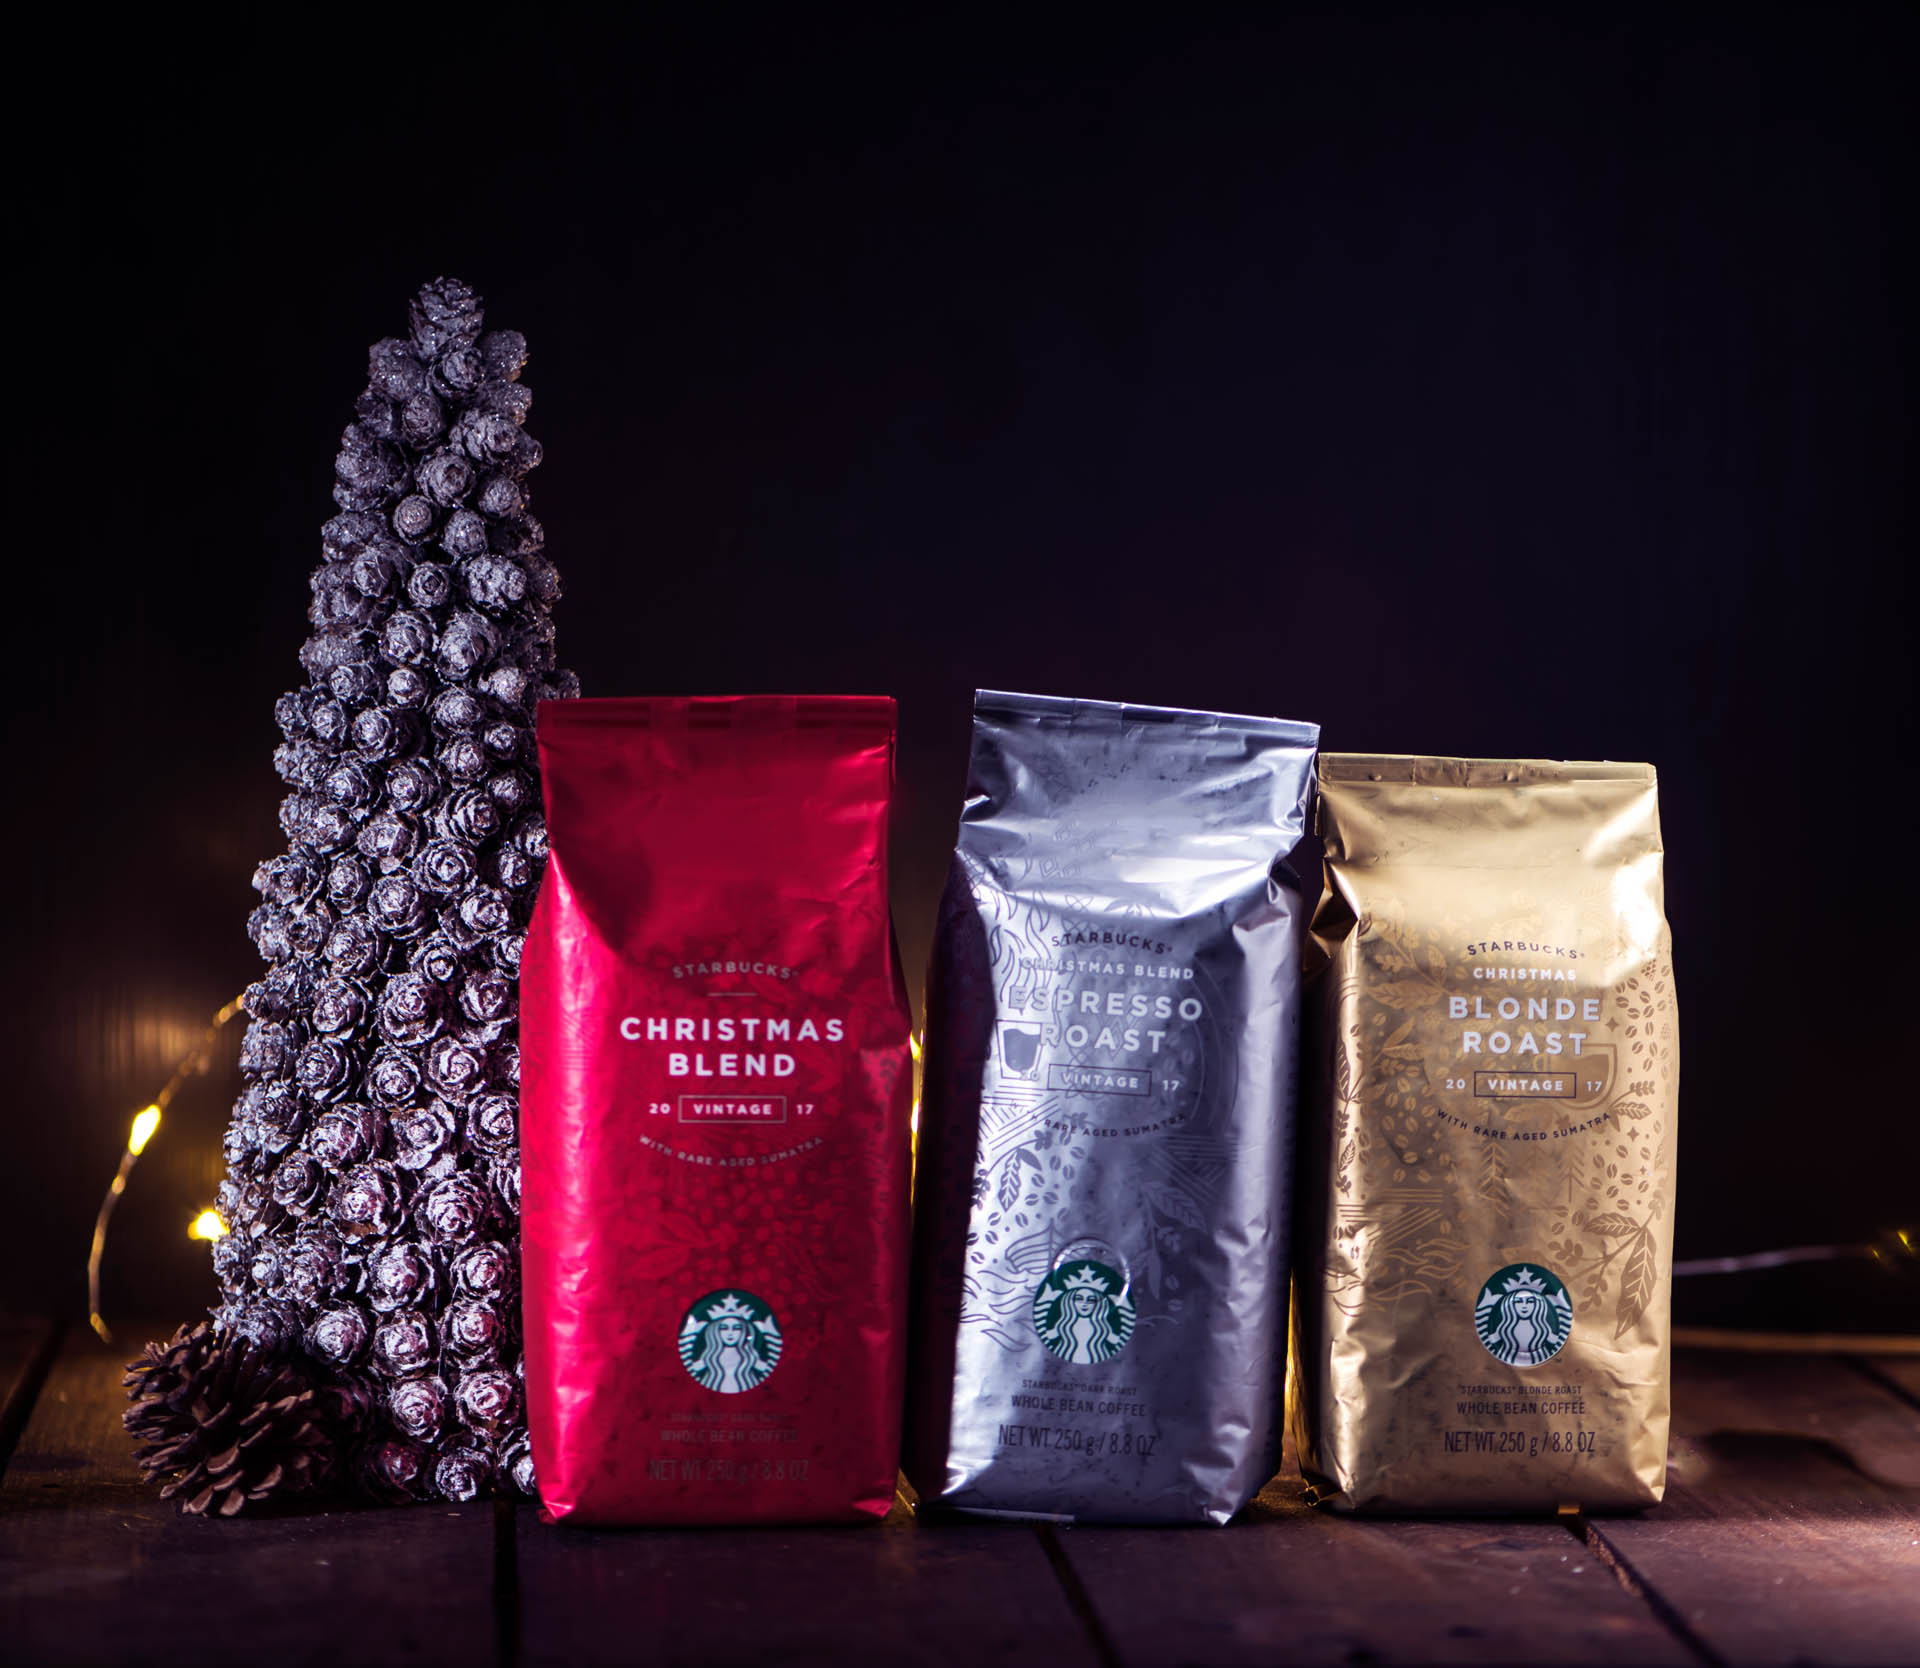 Singapore is first to get the Starbucks Christmas drinks this year--with new flavors Vanilla Nougat and Joyful Medley Tea! - Alvinology